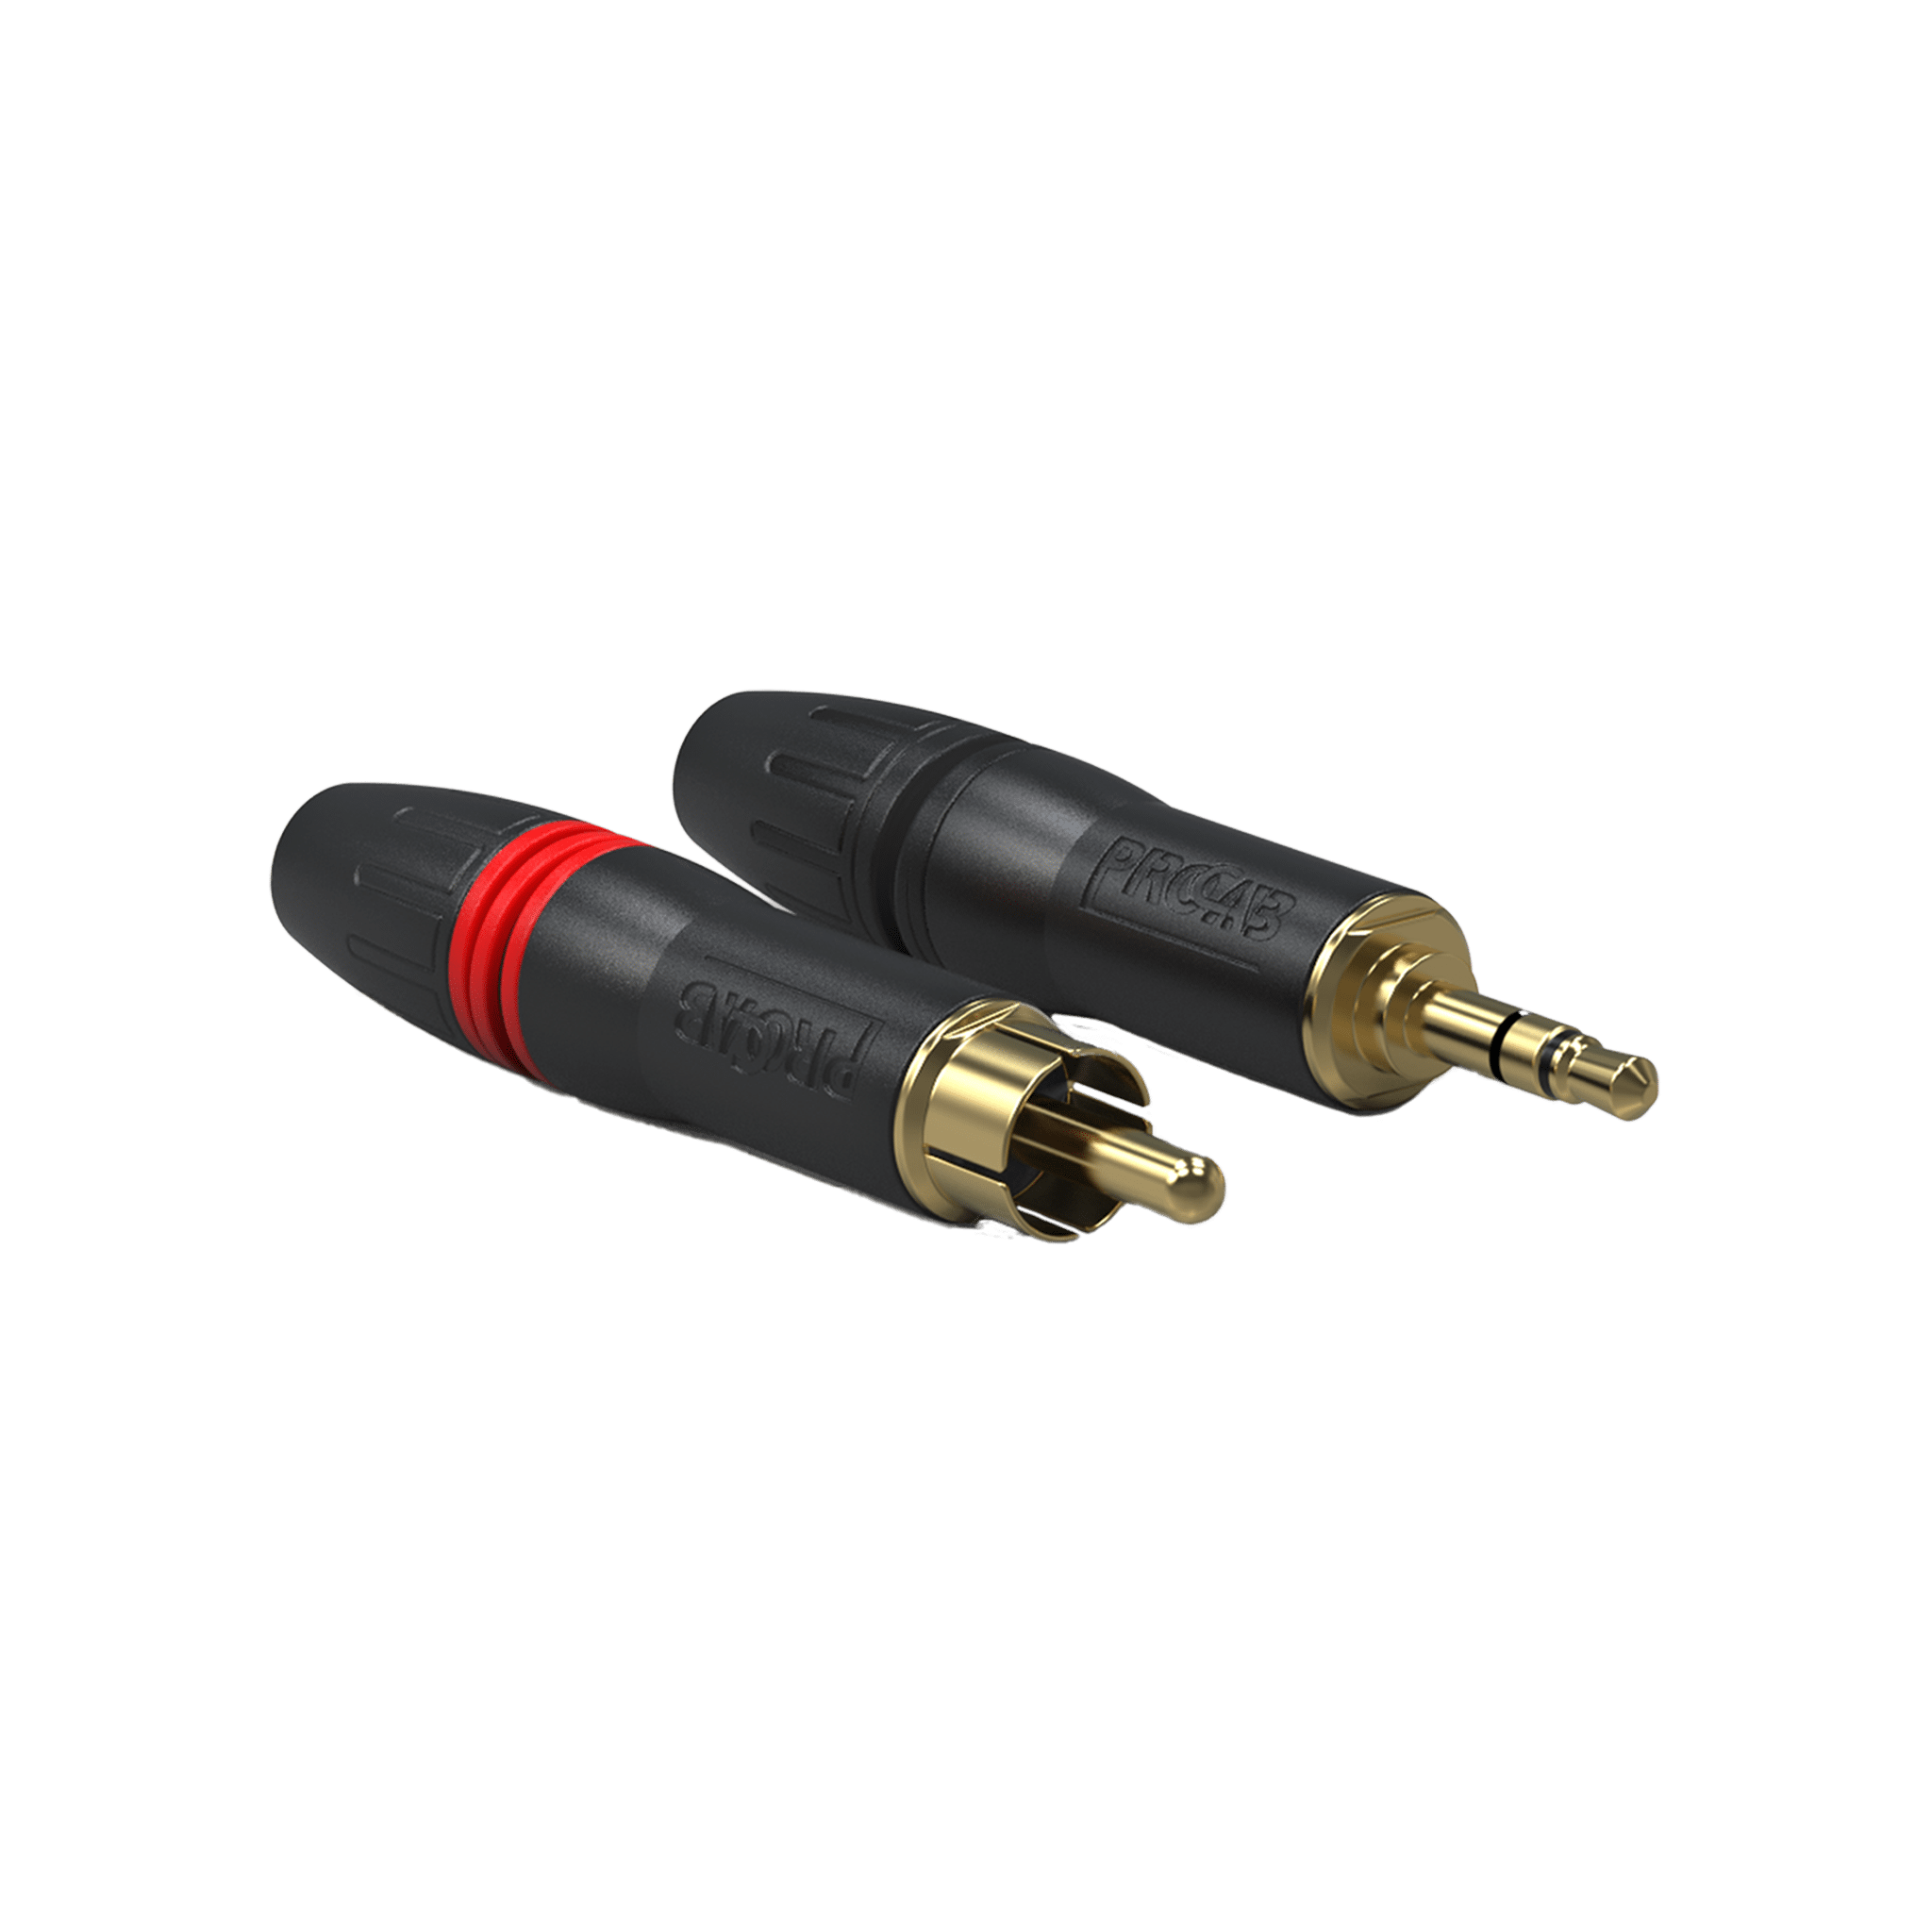 PCR2M - Cable connector - professional RCA/Cinch male - gold contacts - pair